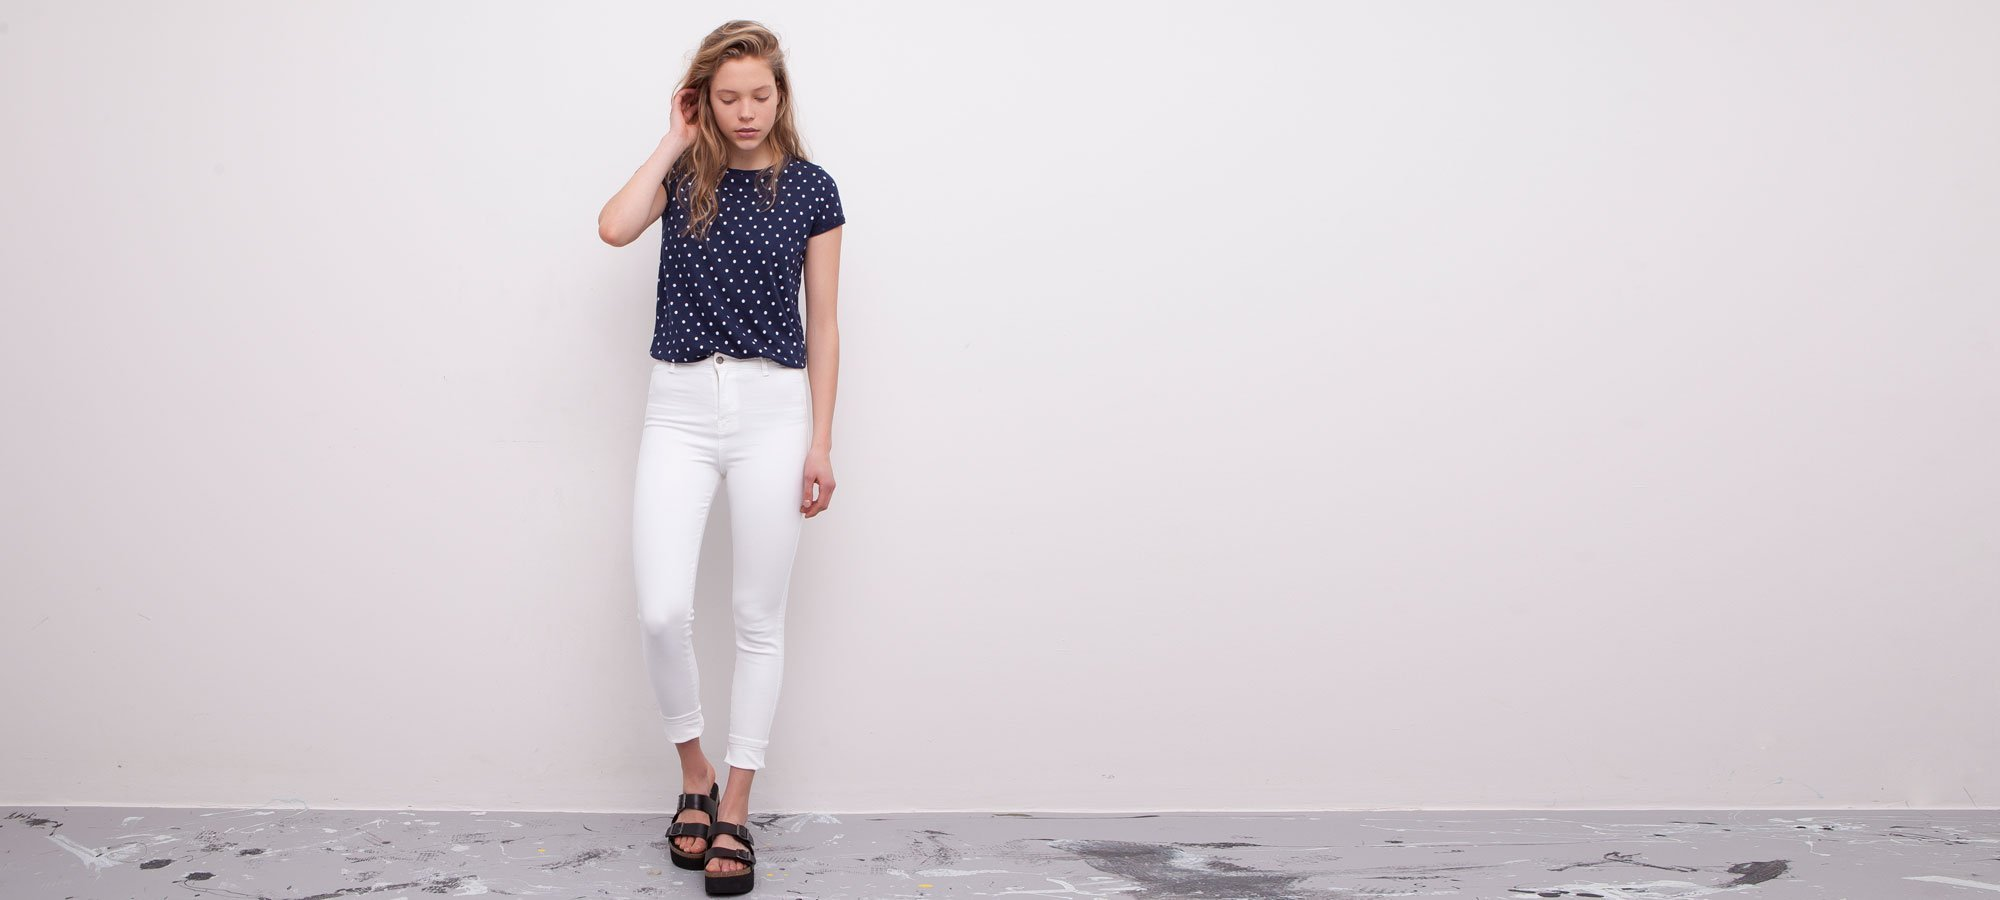 Pull and Bear jeans, consigue un look urbano y moderno